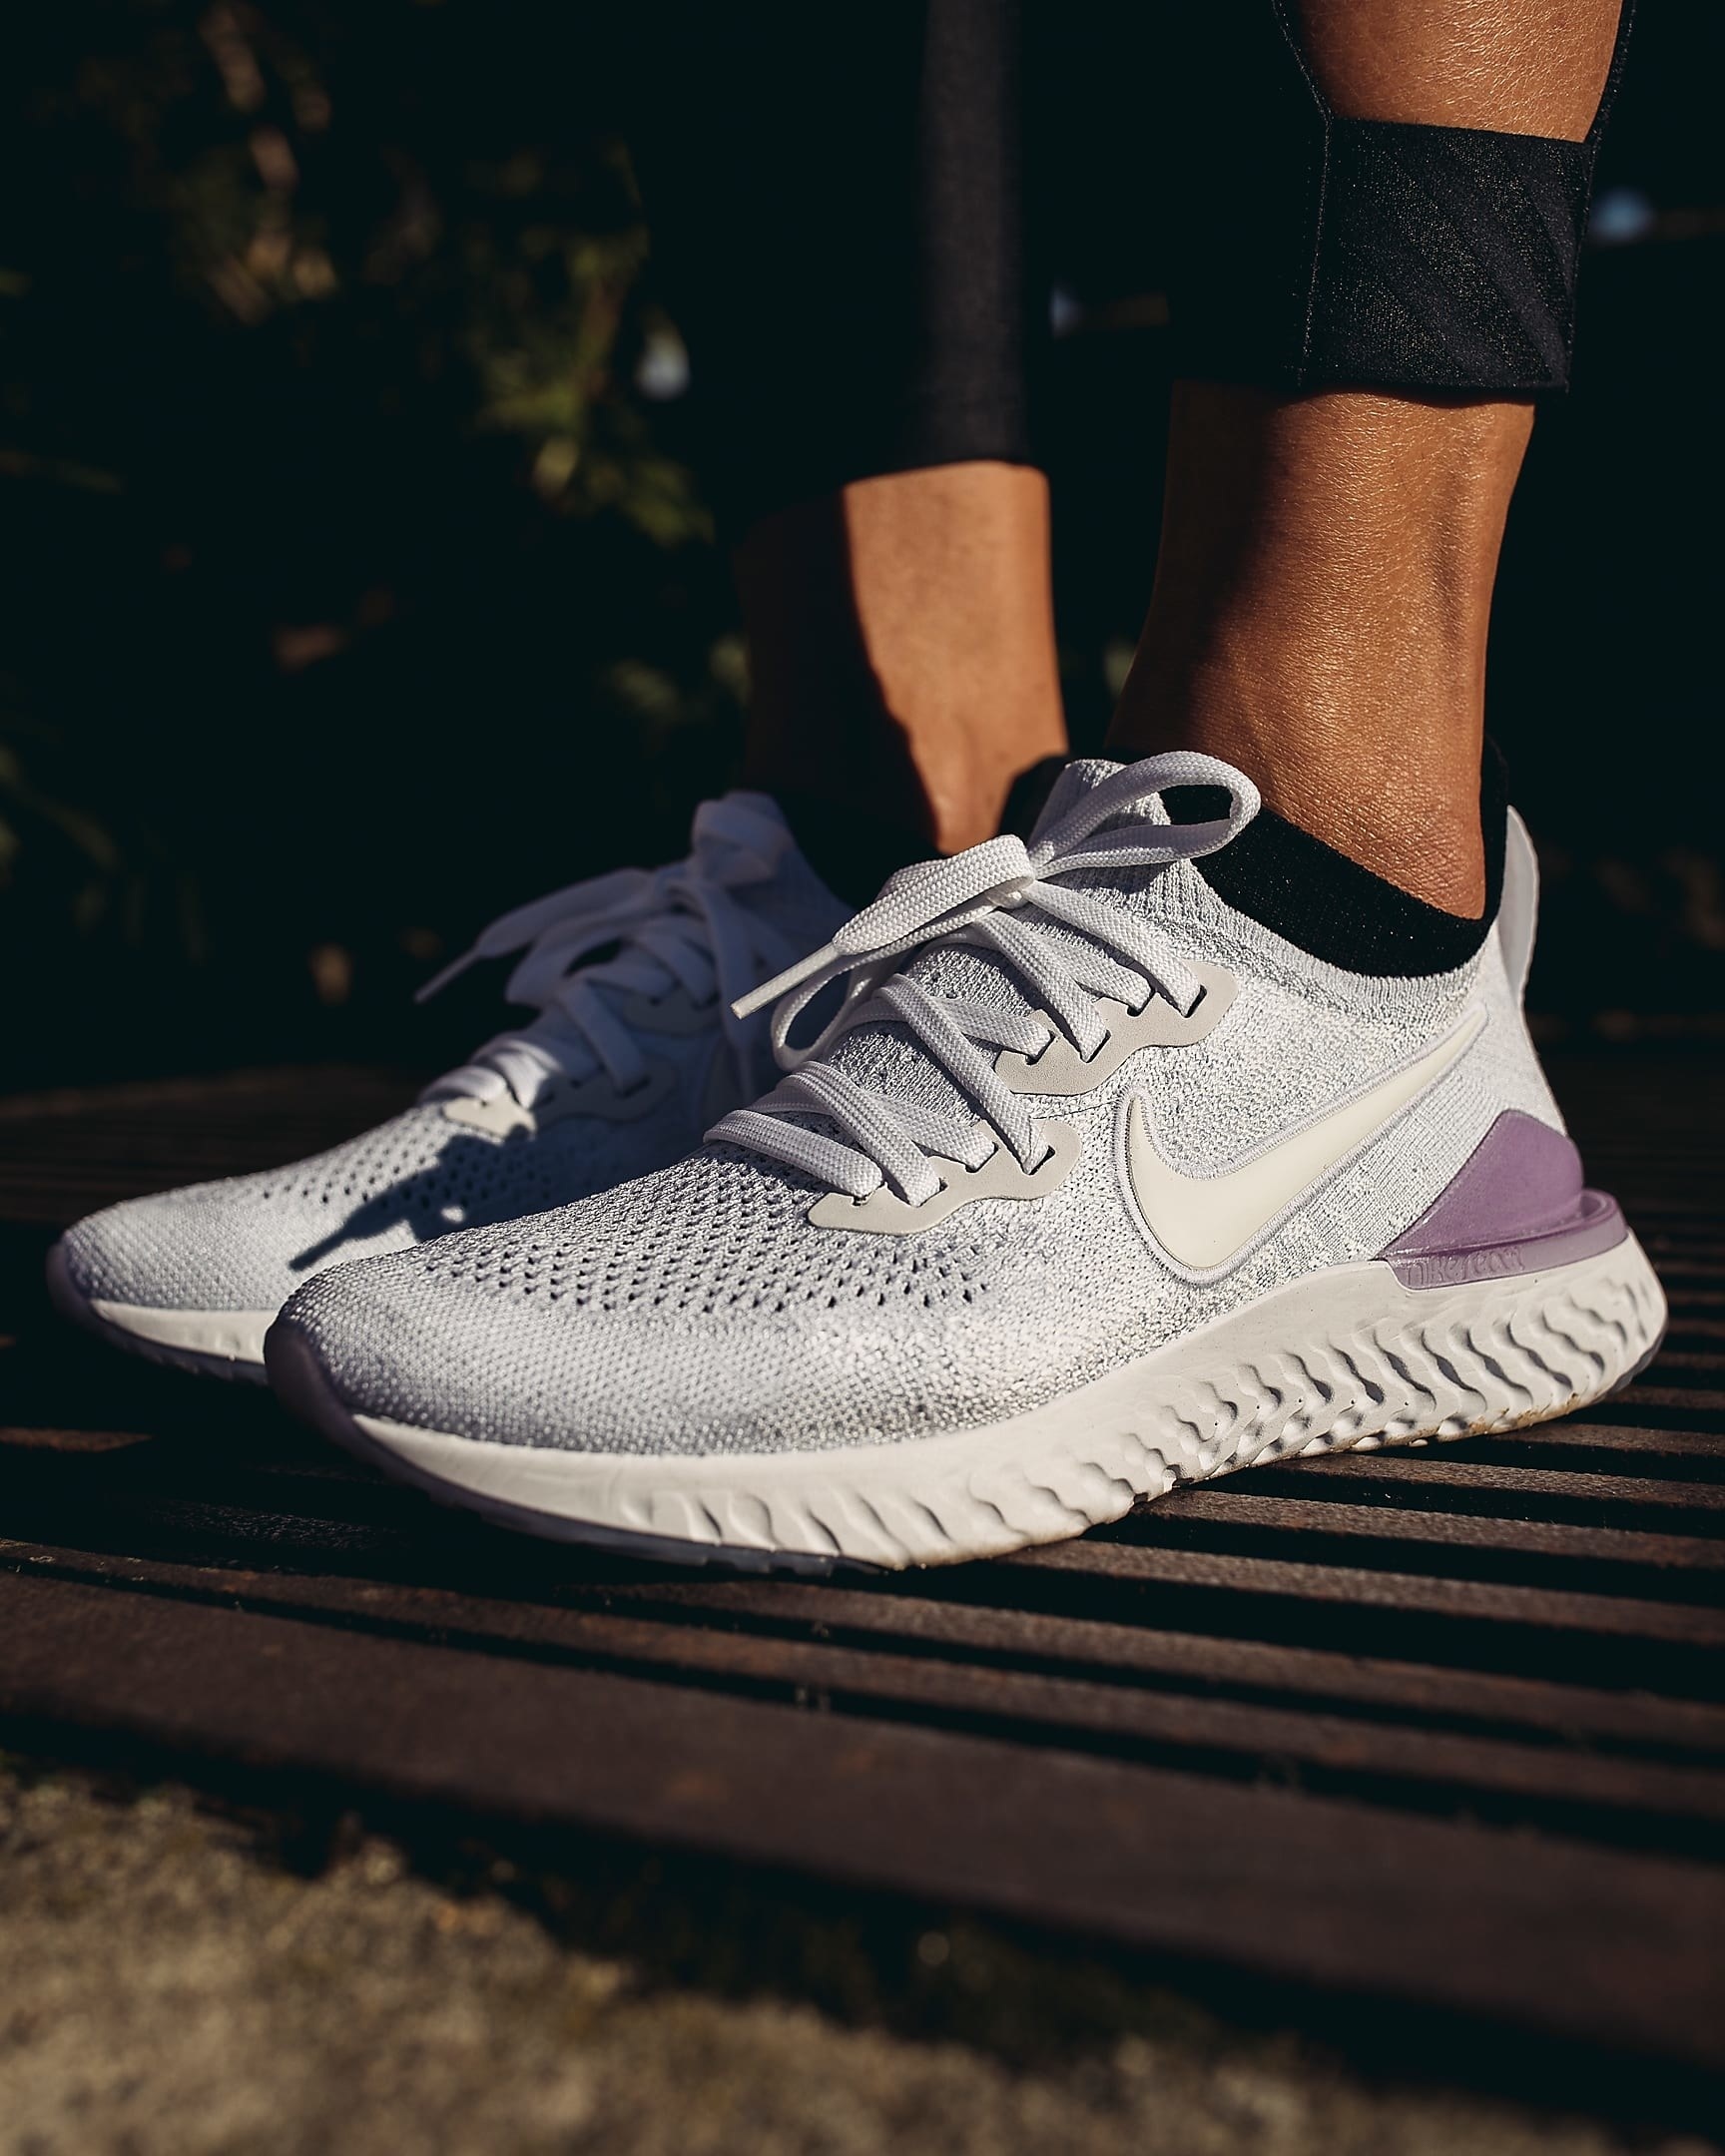 Gray and purple nike flynit sneakers